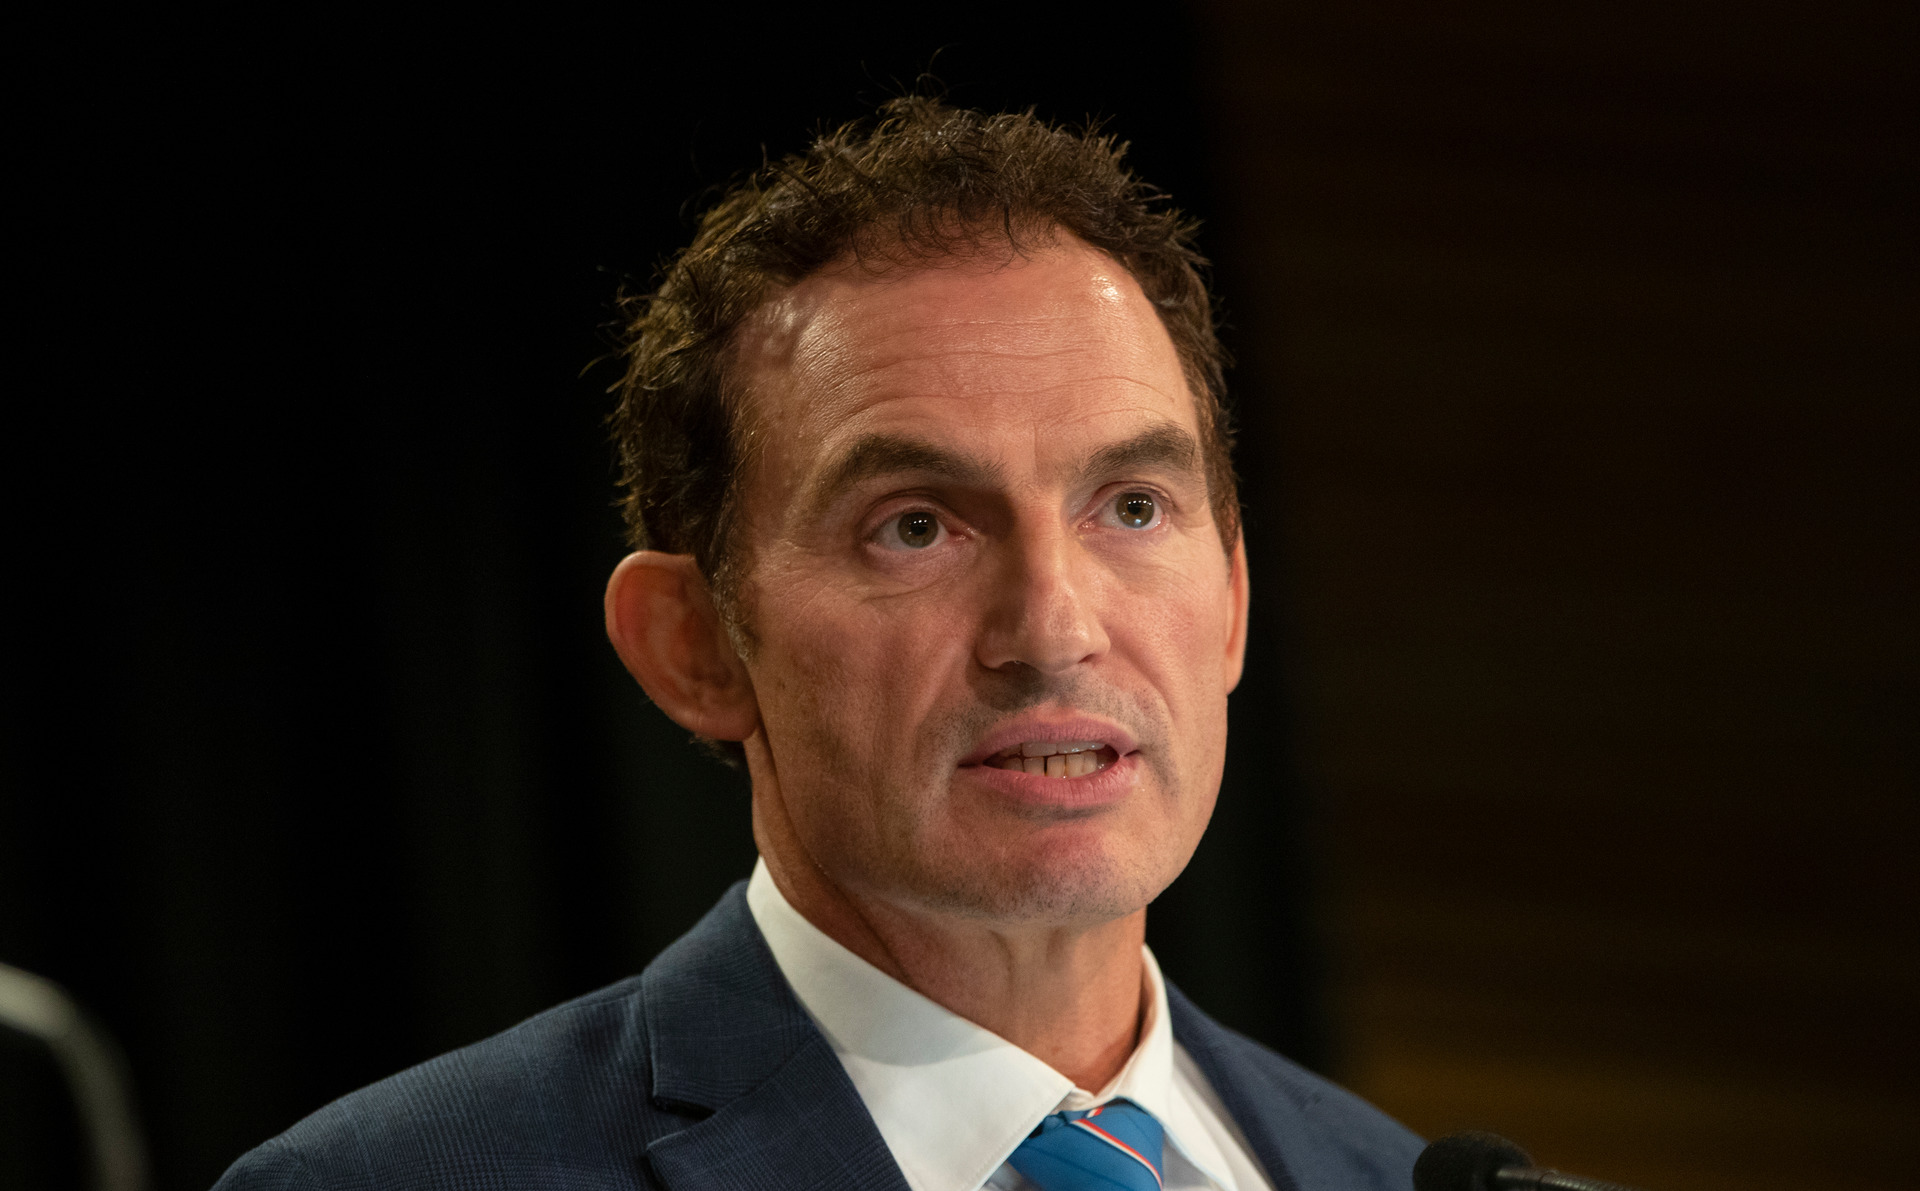 Police Minister Stuart Nash 'very sorry' for swearing at Air NZ staff member